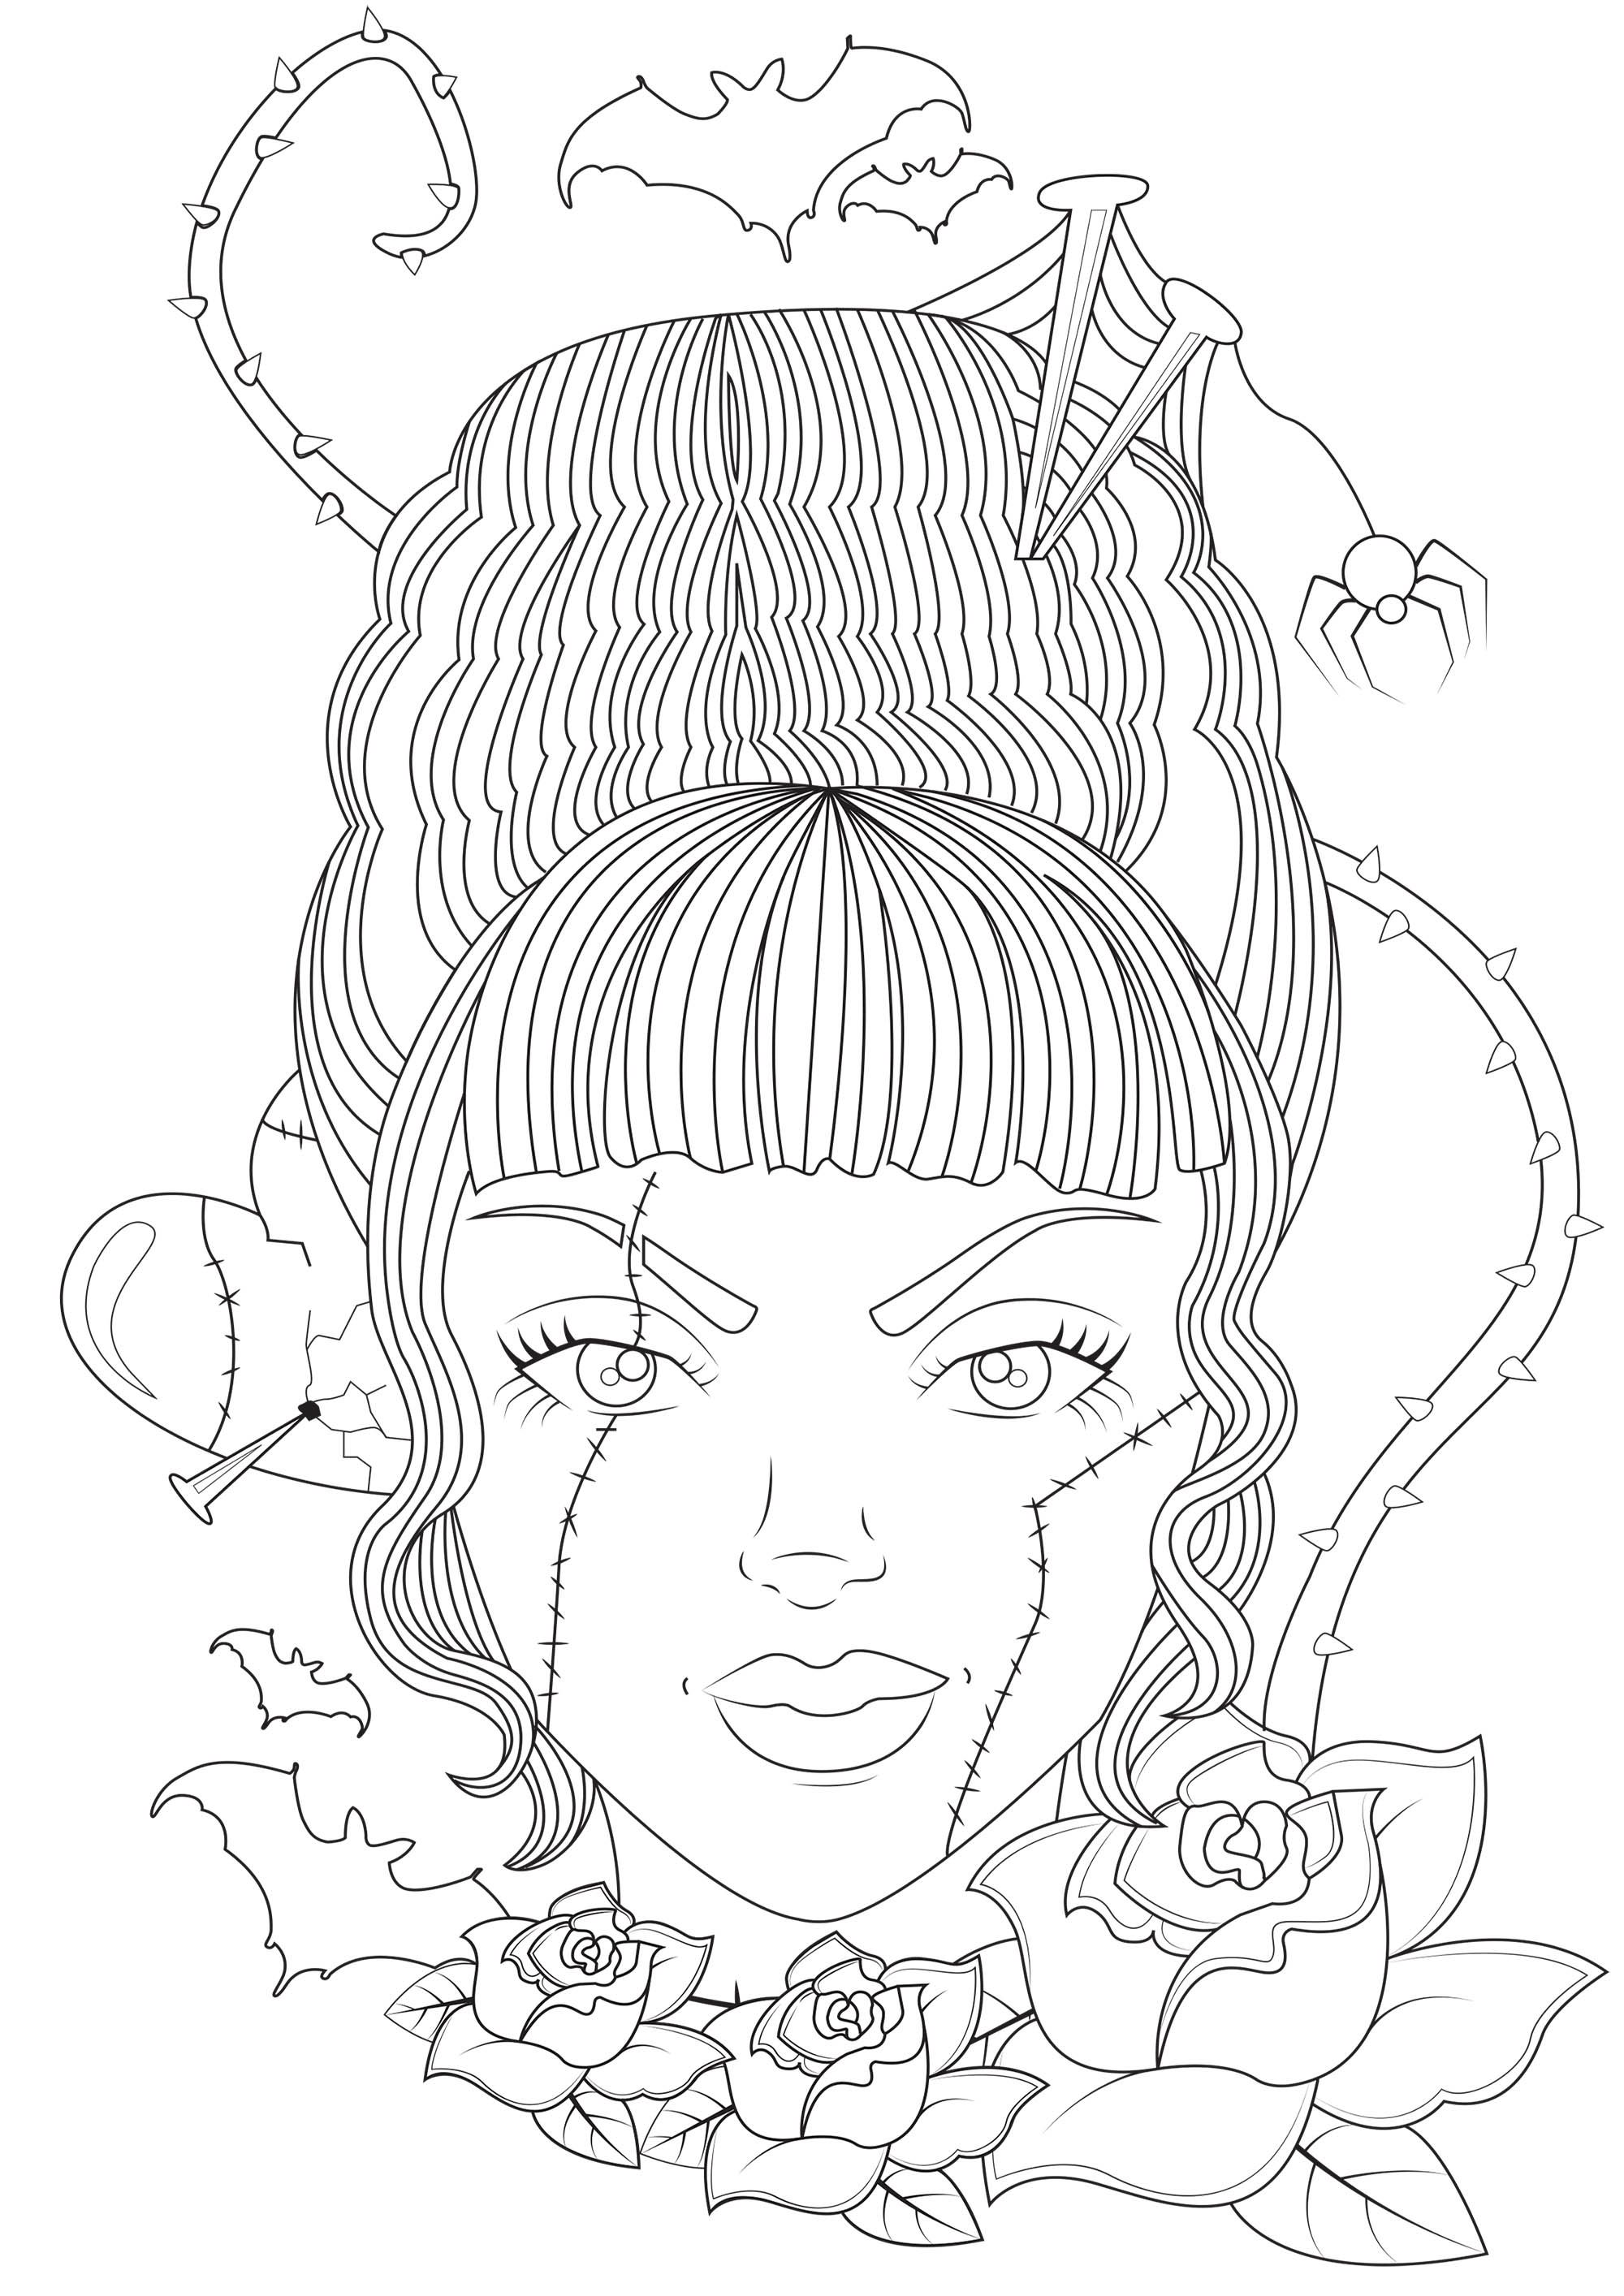 Coloring Page Inspired By Bride Of Frankenstein 1935 American Science Fiction Horror Film Halloween Coloring Pages Cute Coloring Pages Tumblr Coloring Pages